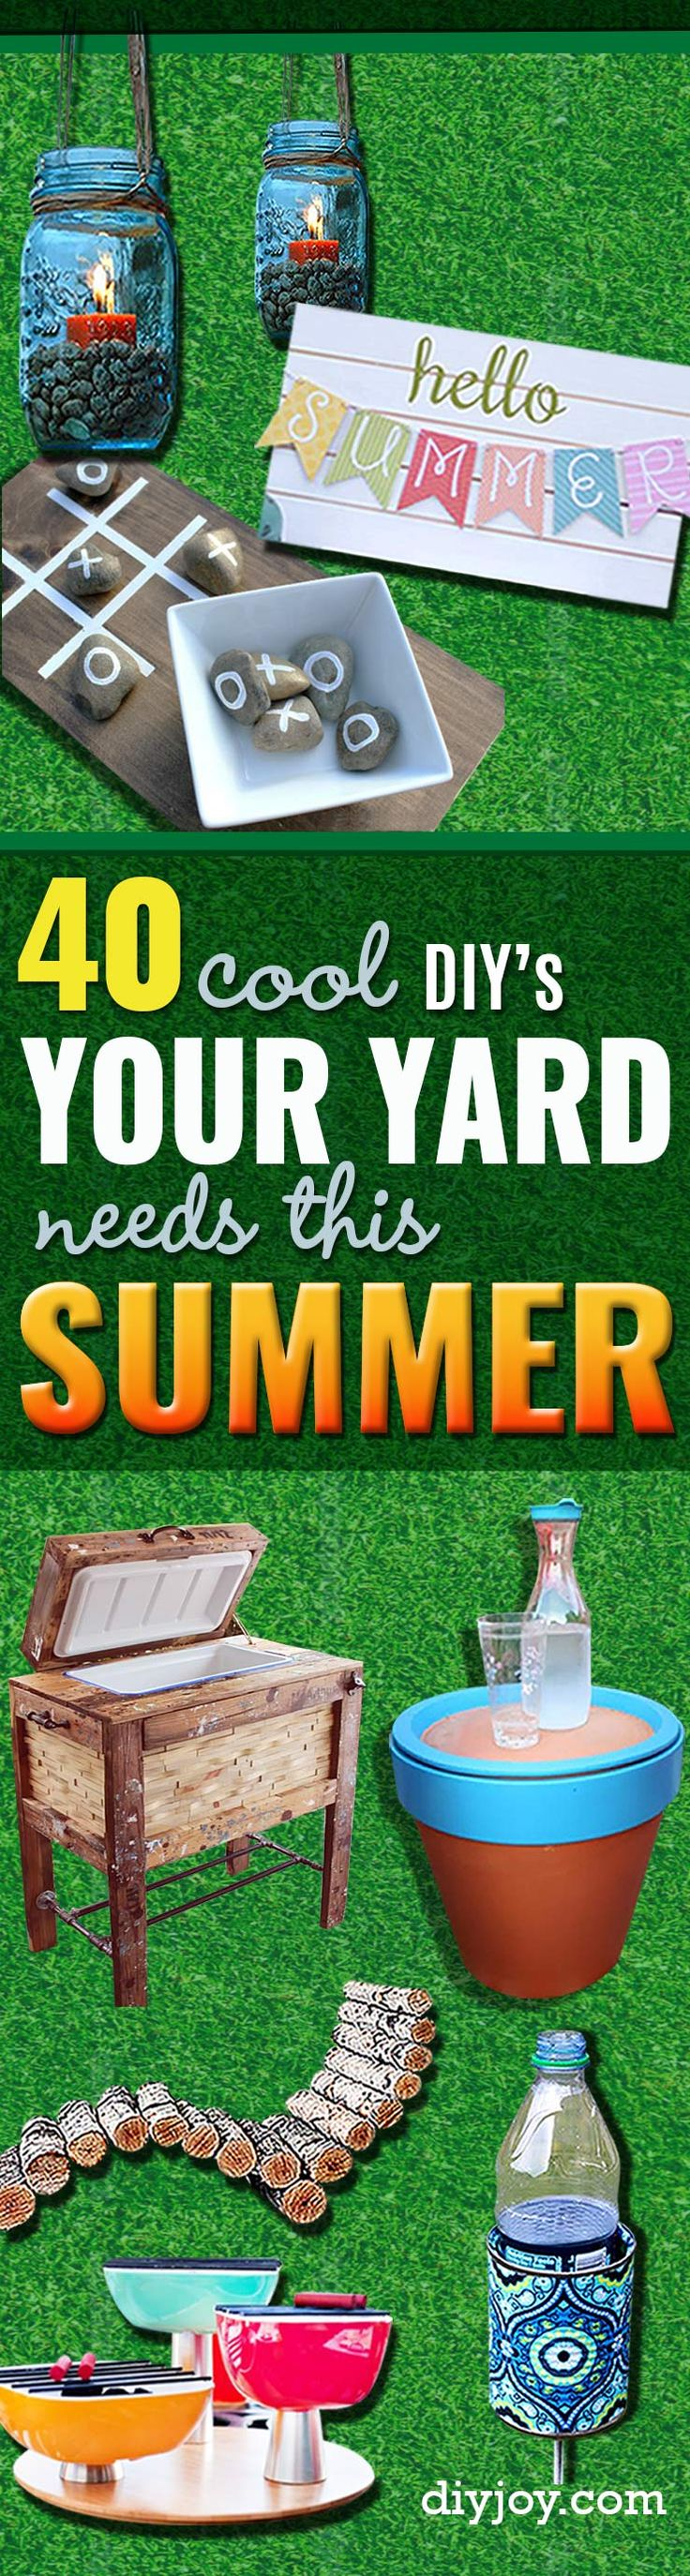 Ideas For Getting Your Home Ready for Summer's Decorating